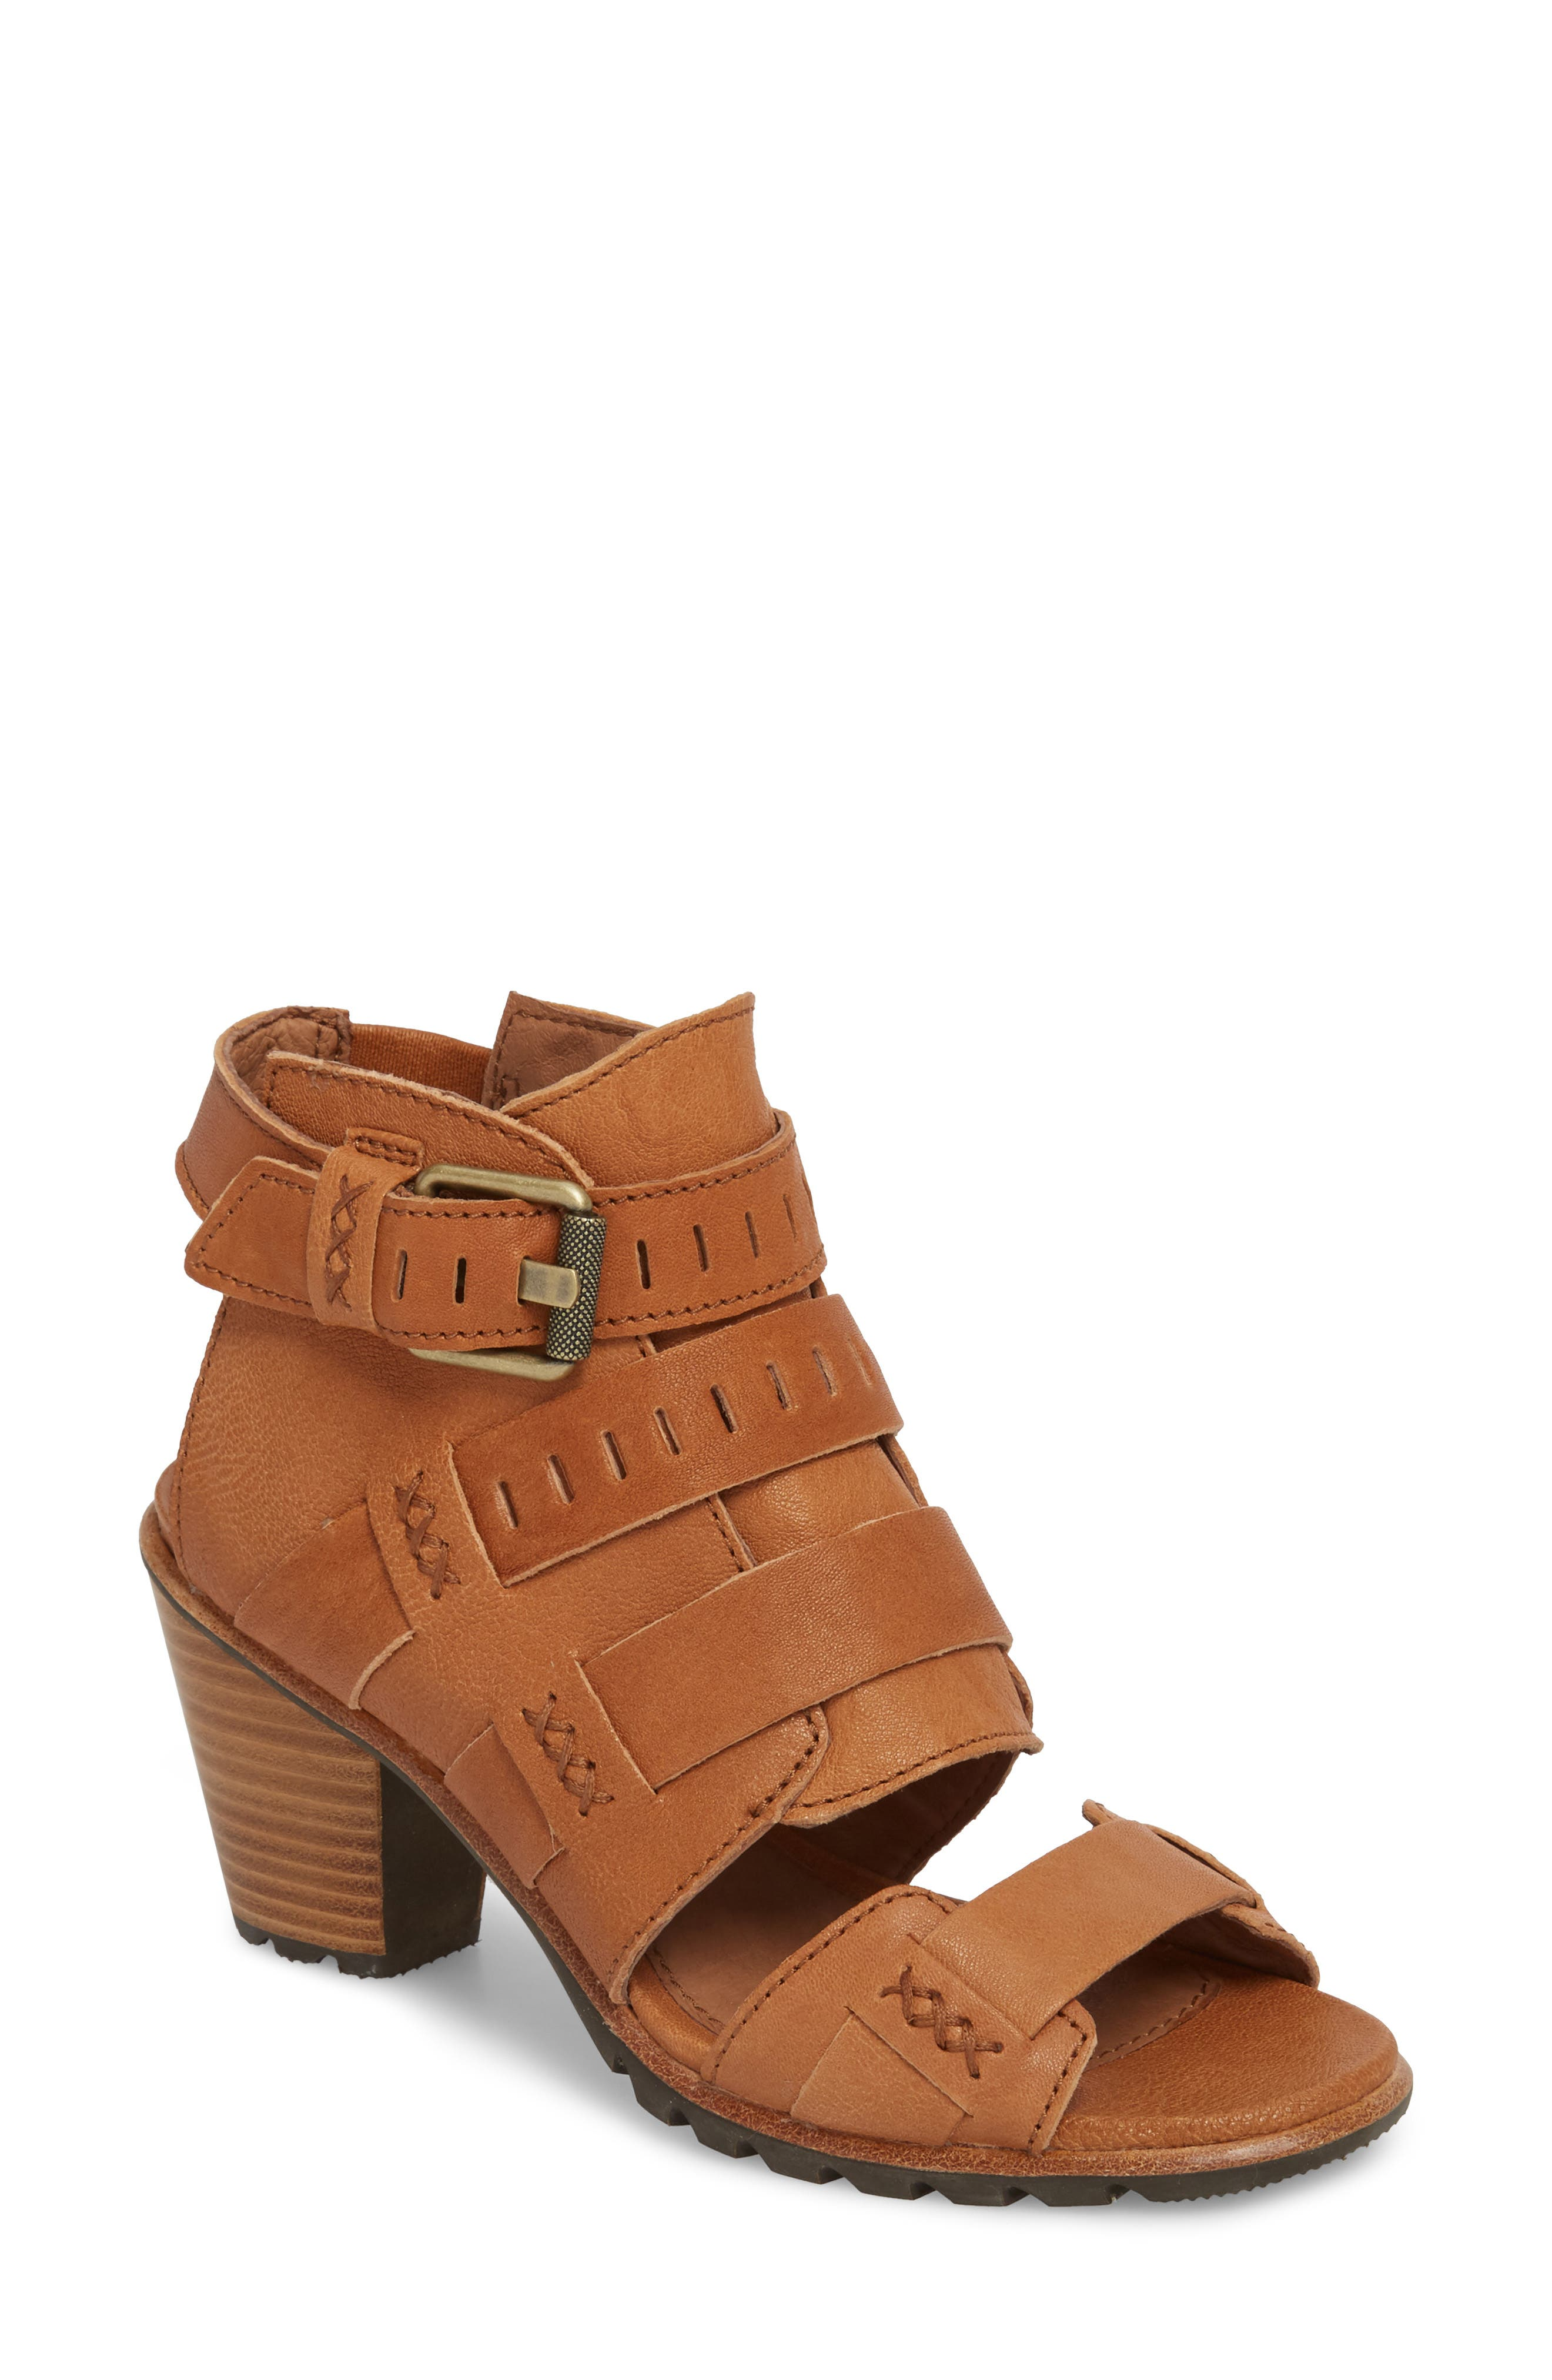 Nadia Buckle Bootie,                             Main thumbnail 1, color,